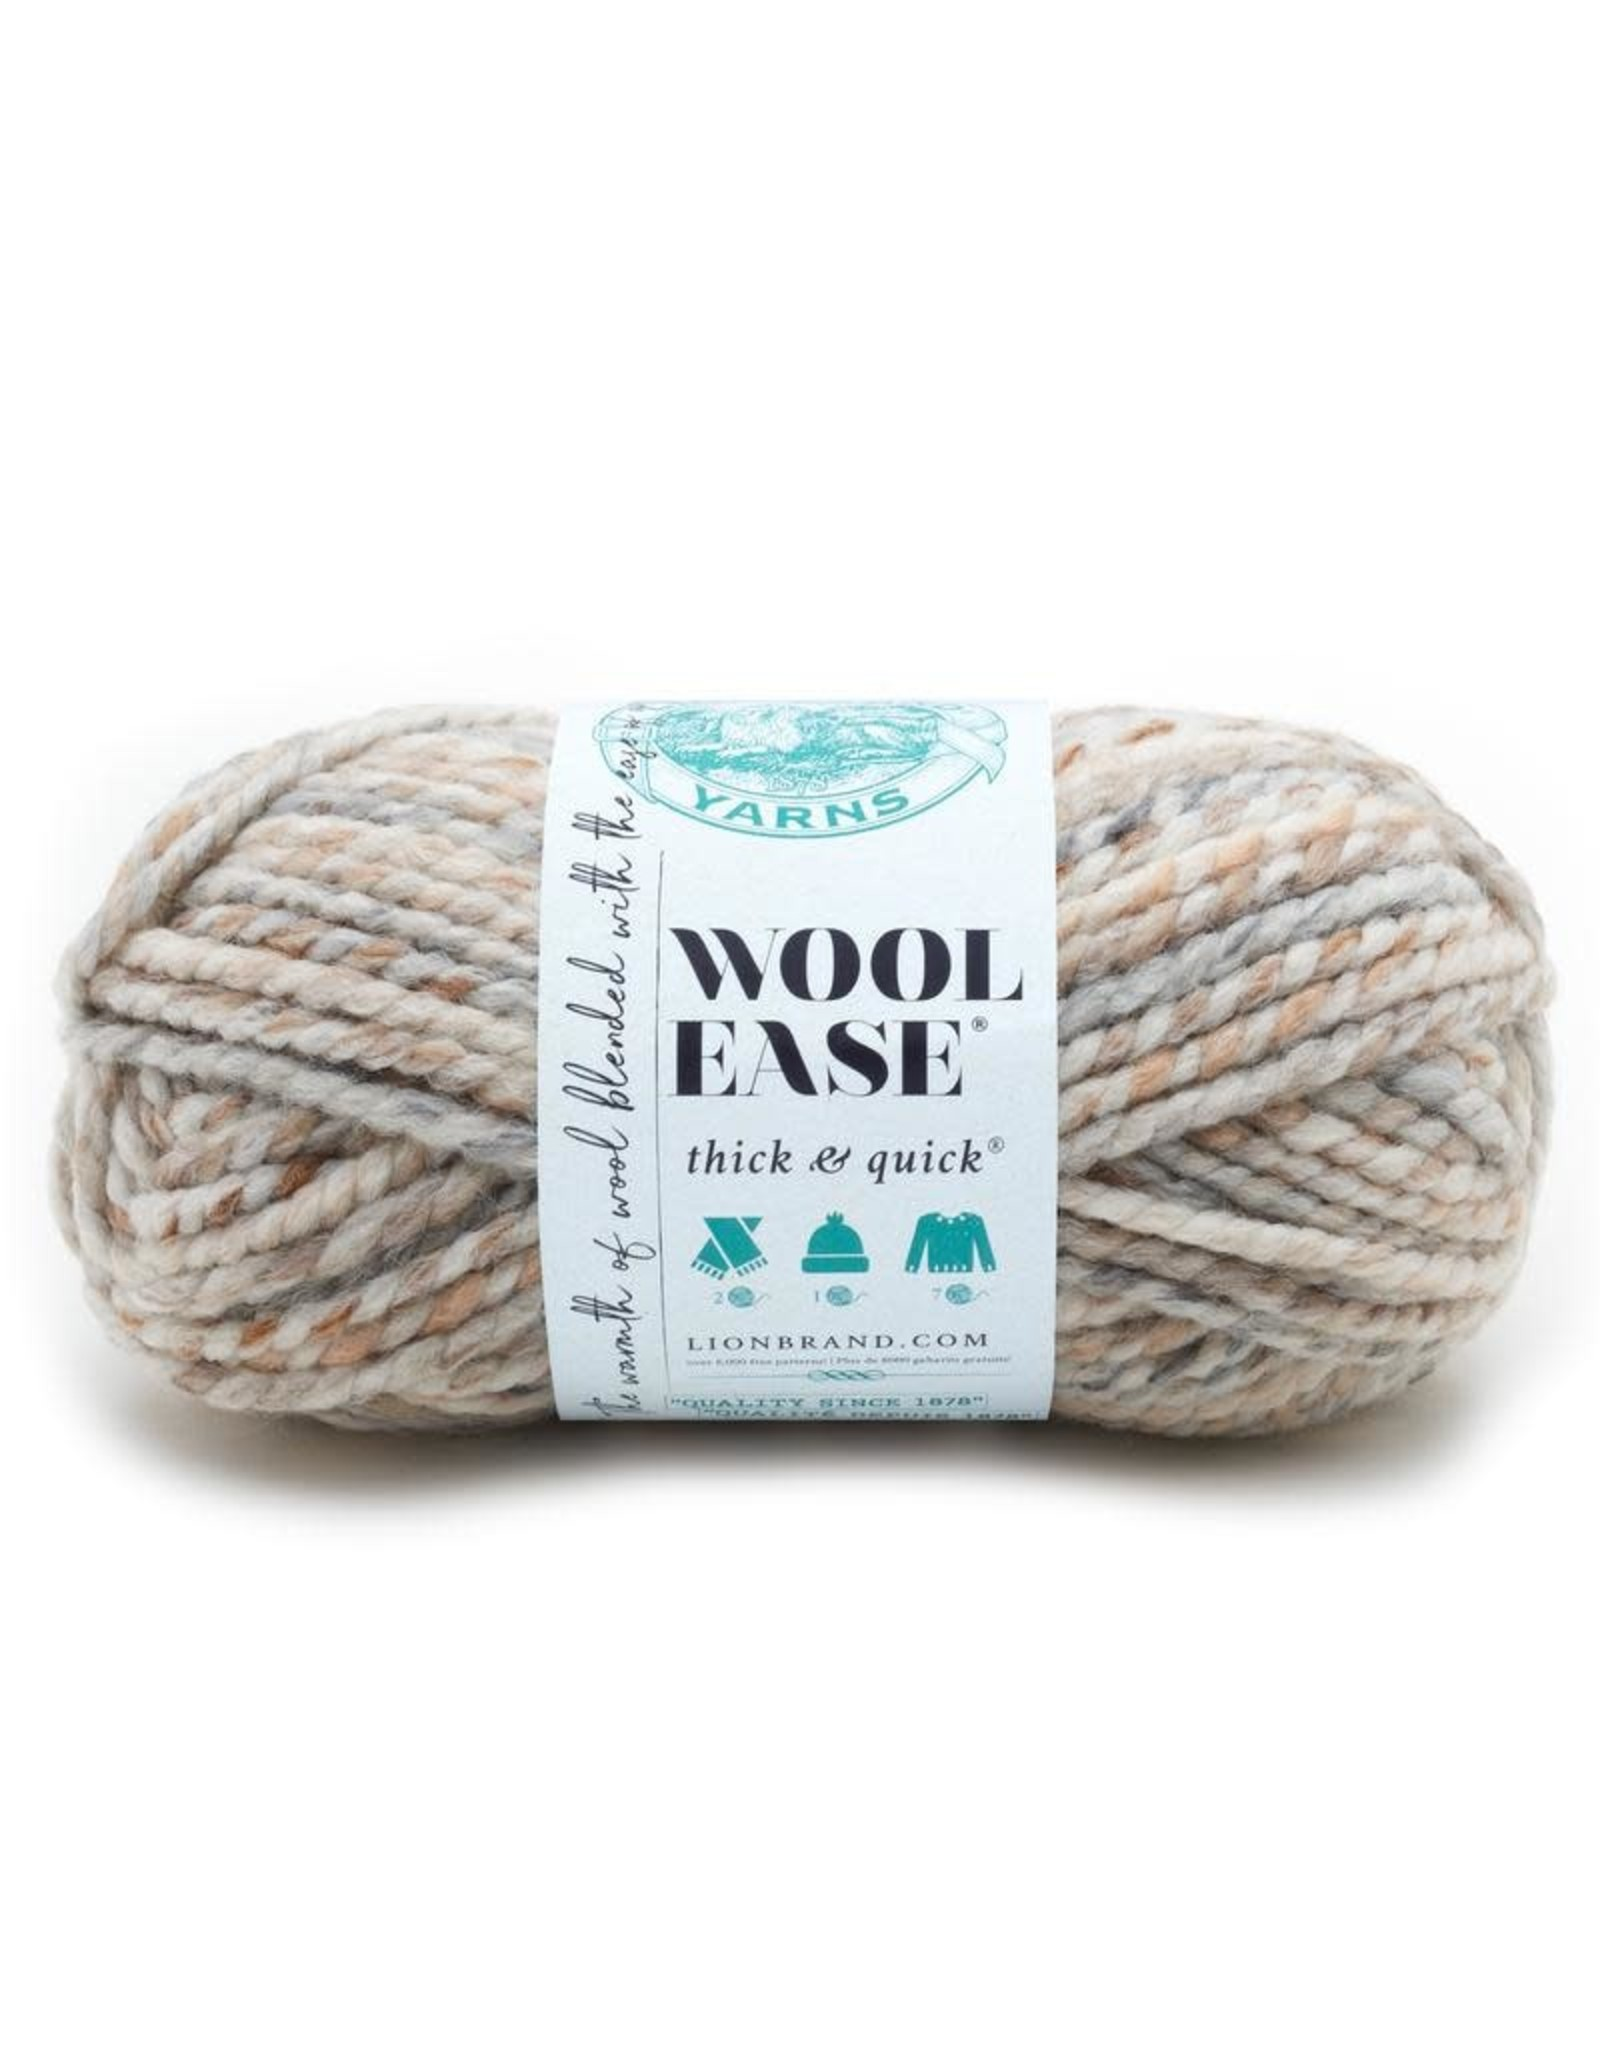 Fossil - Wool Ease Thick and Quick - Lion Brand